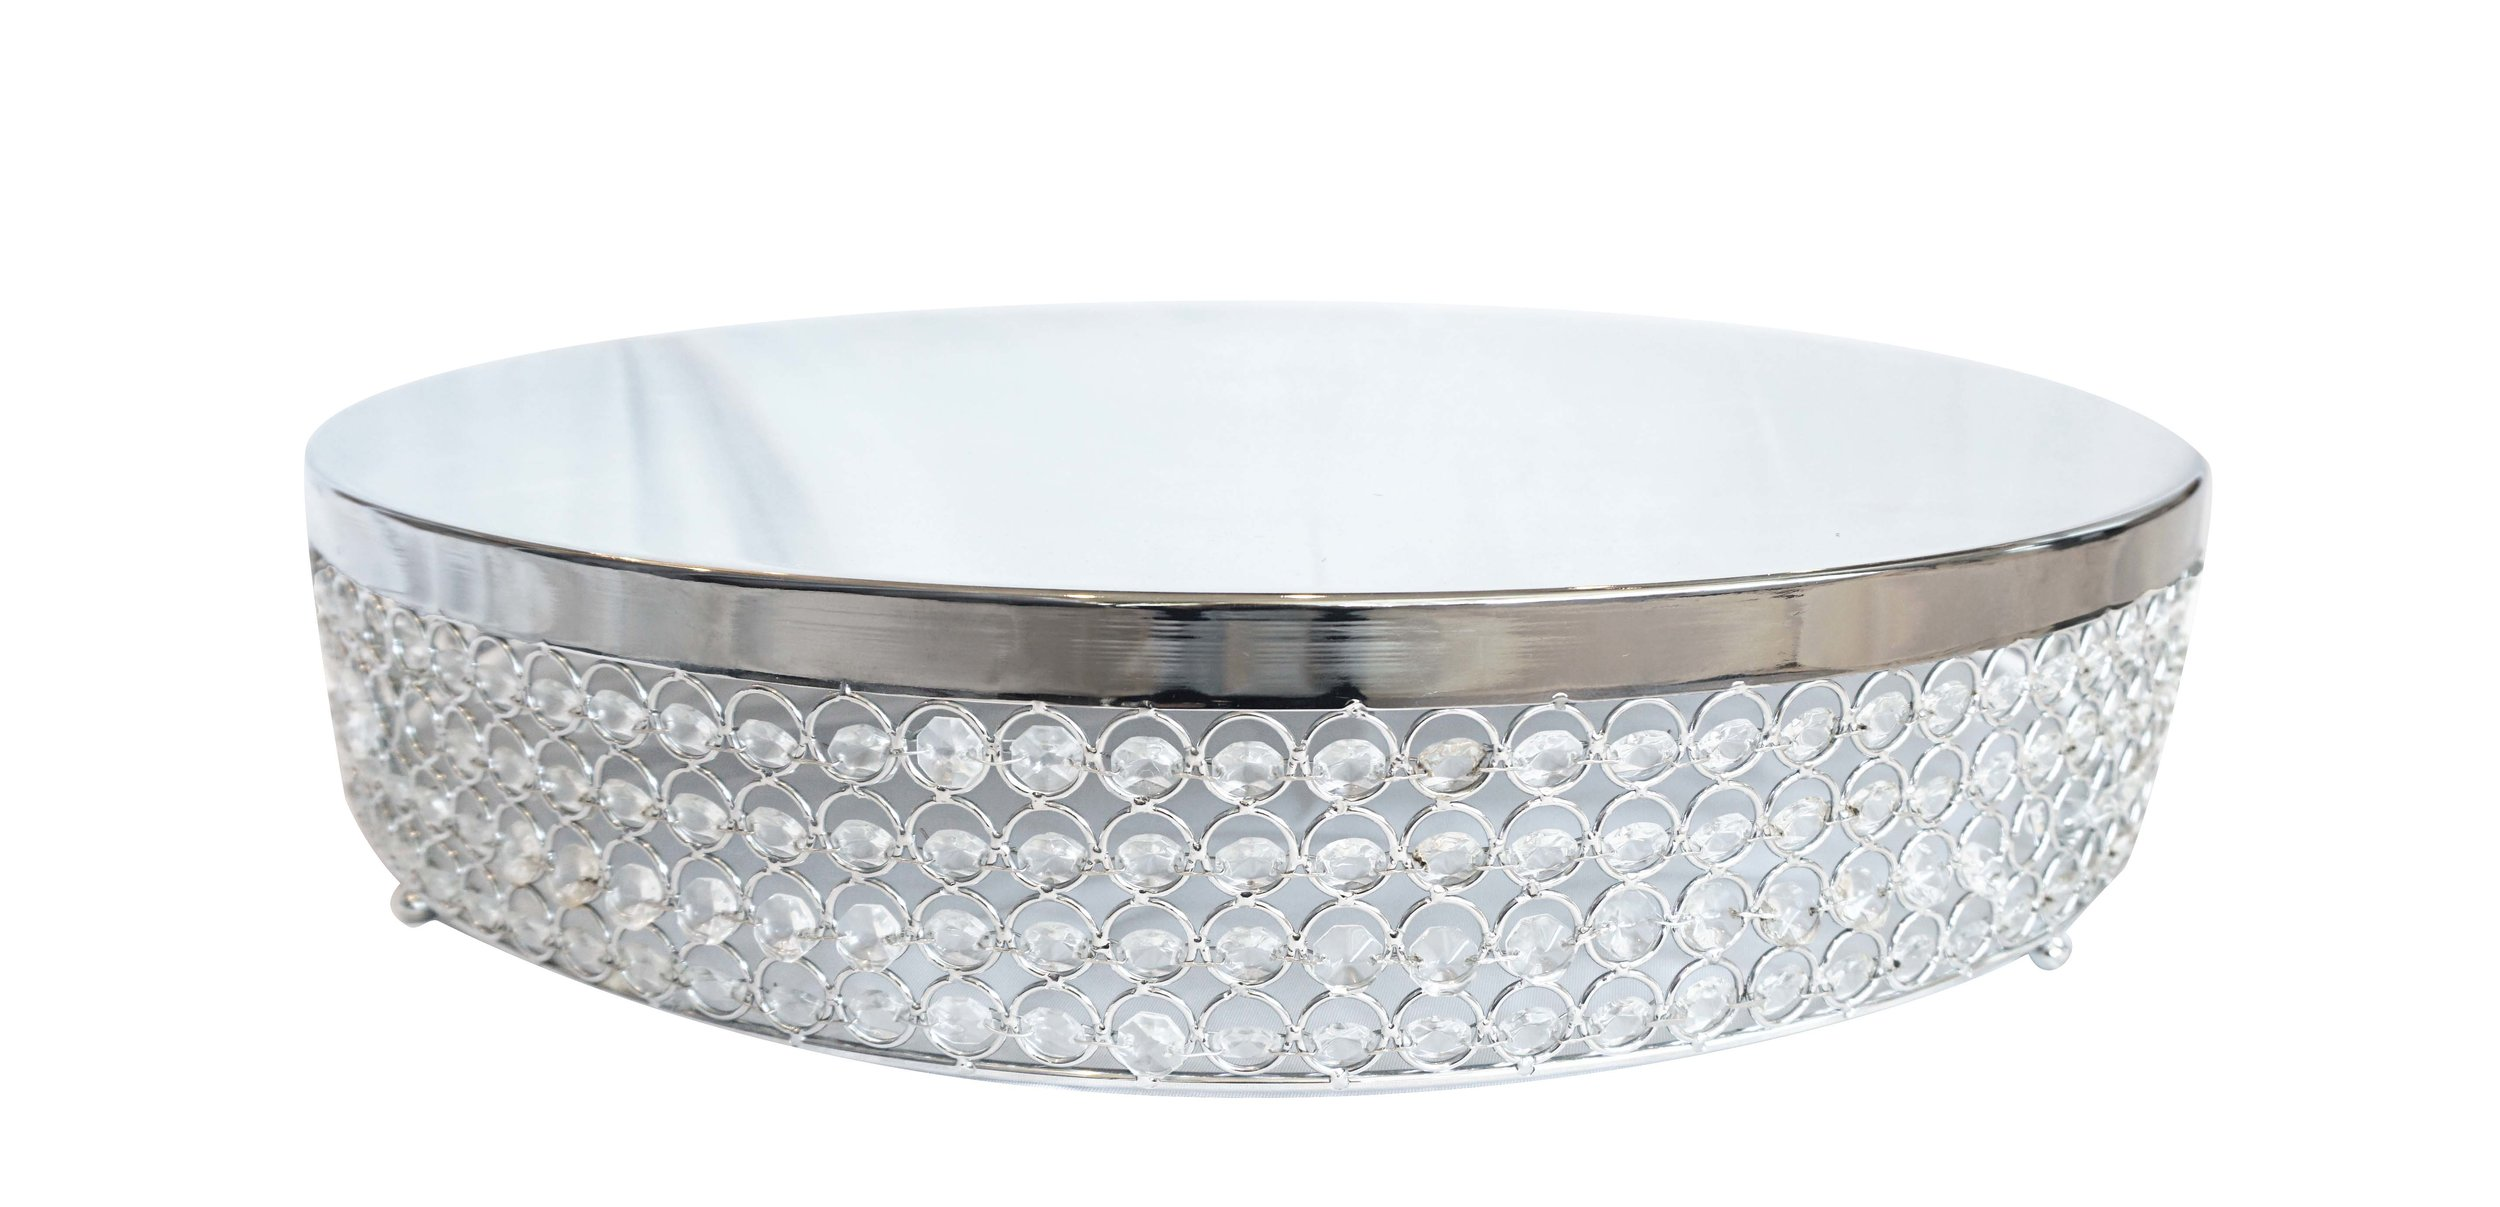 Silver Crystal Cake Stand